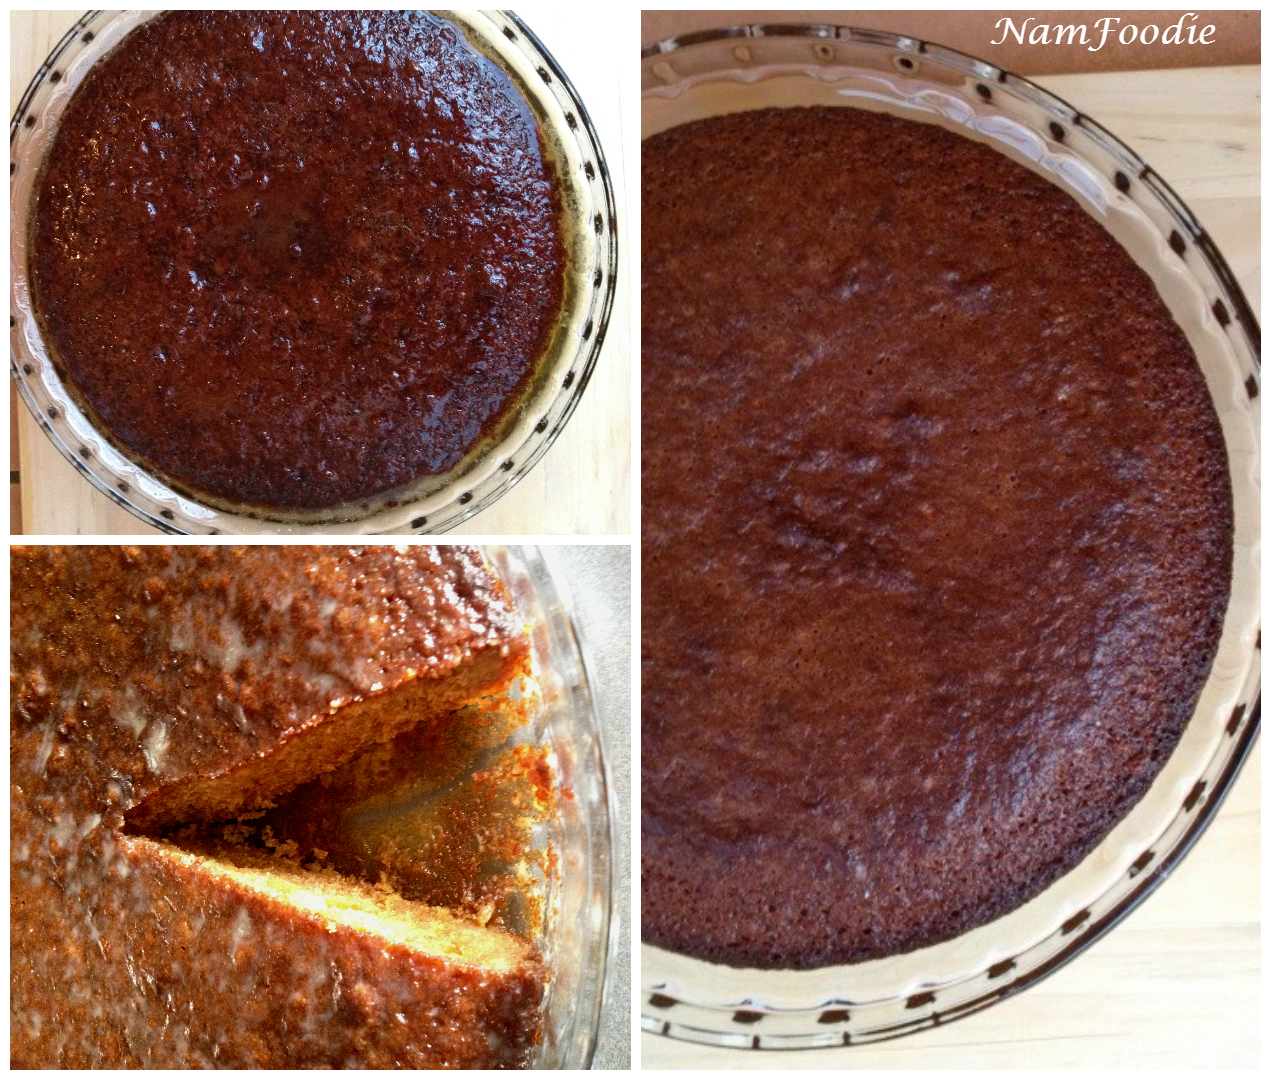 Malva pudding 2